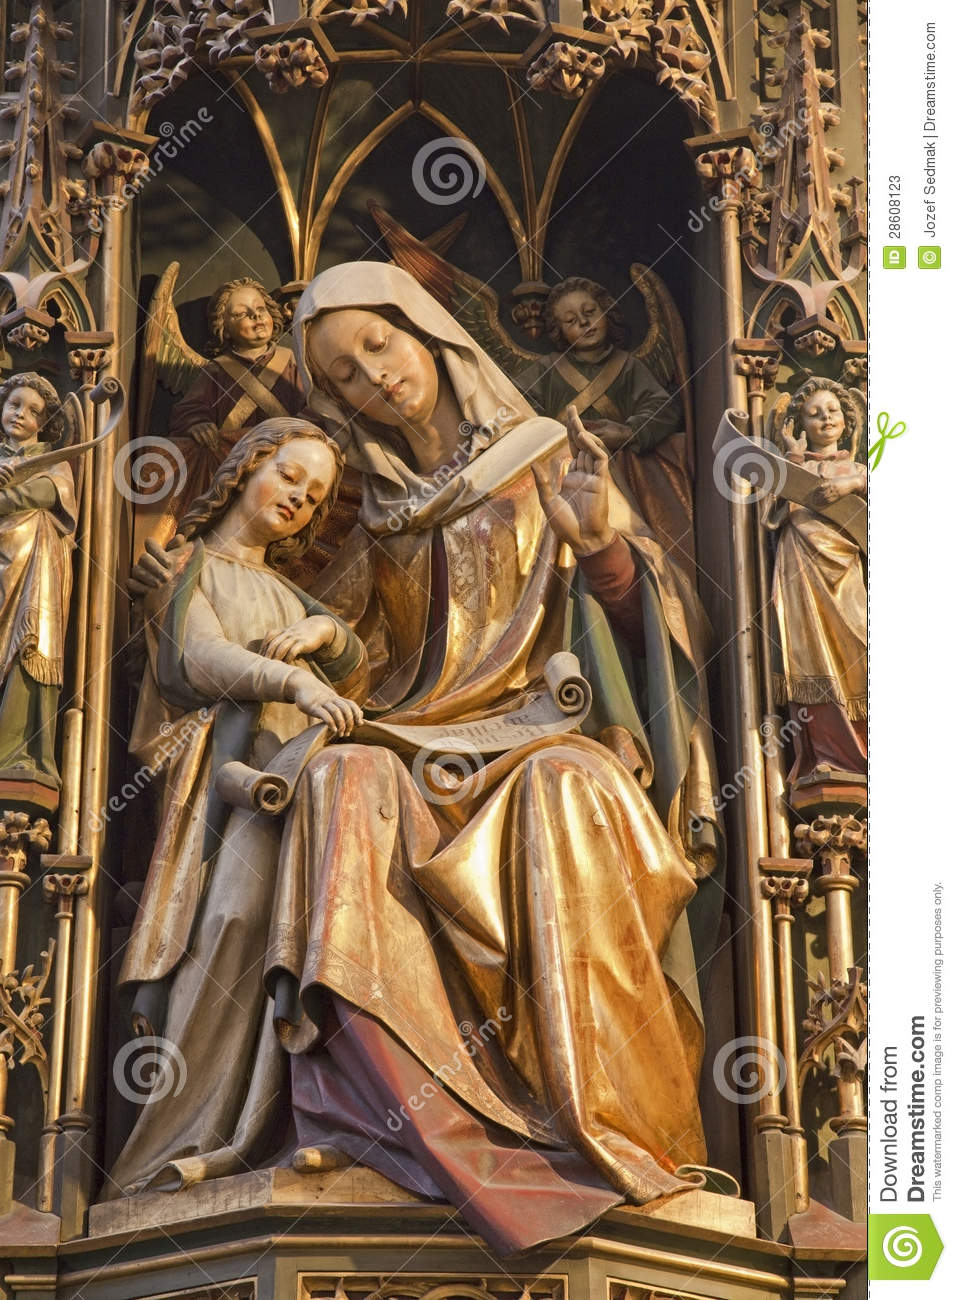 - koice-statue-holy-ann-mary-saint-elizabeth-gothic-cathedral-28608123